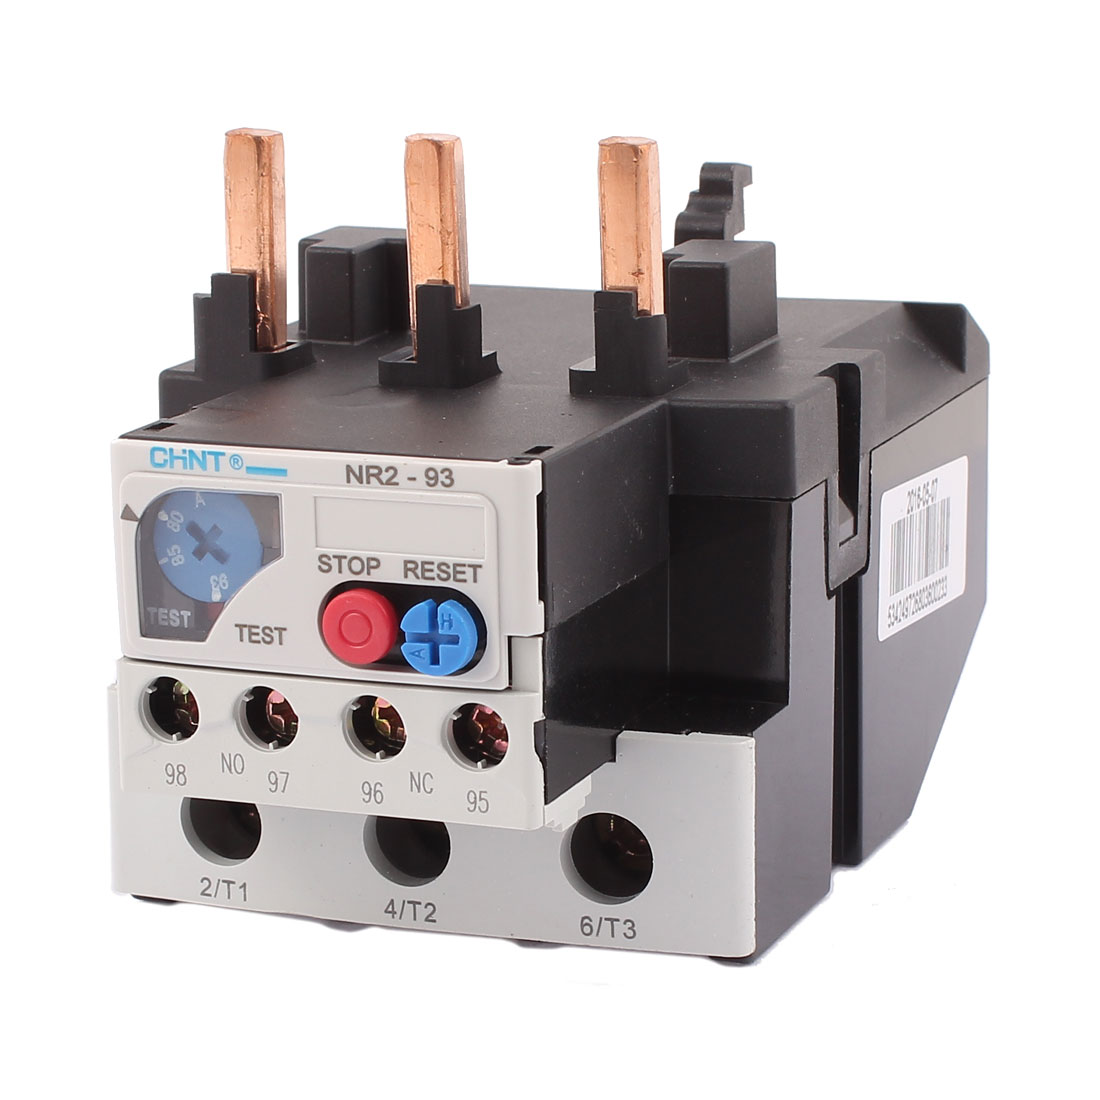 NR2-93 80-93A 3 Pole 1 NO 1 NC Motor Protector Electric Thermal Overload Relay